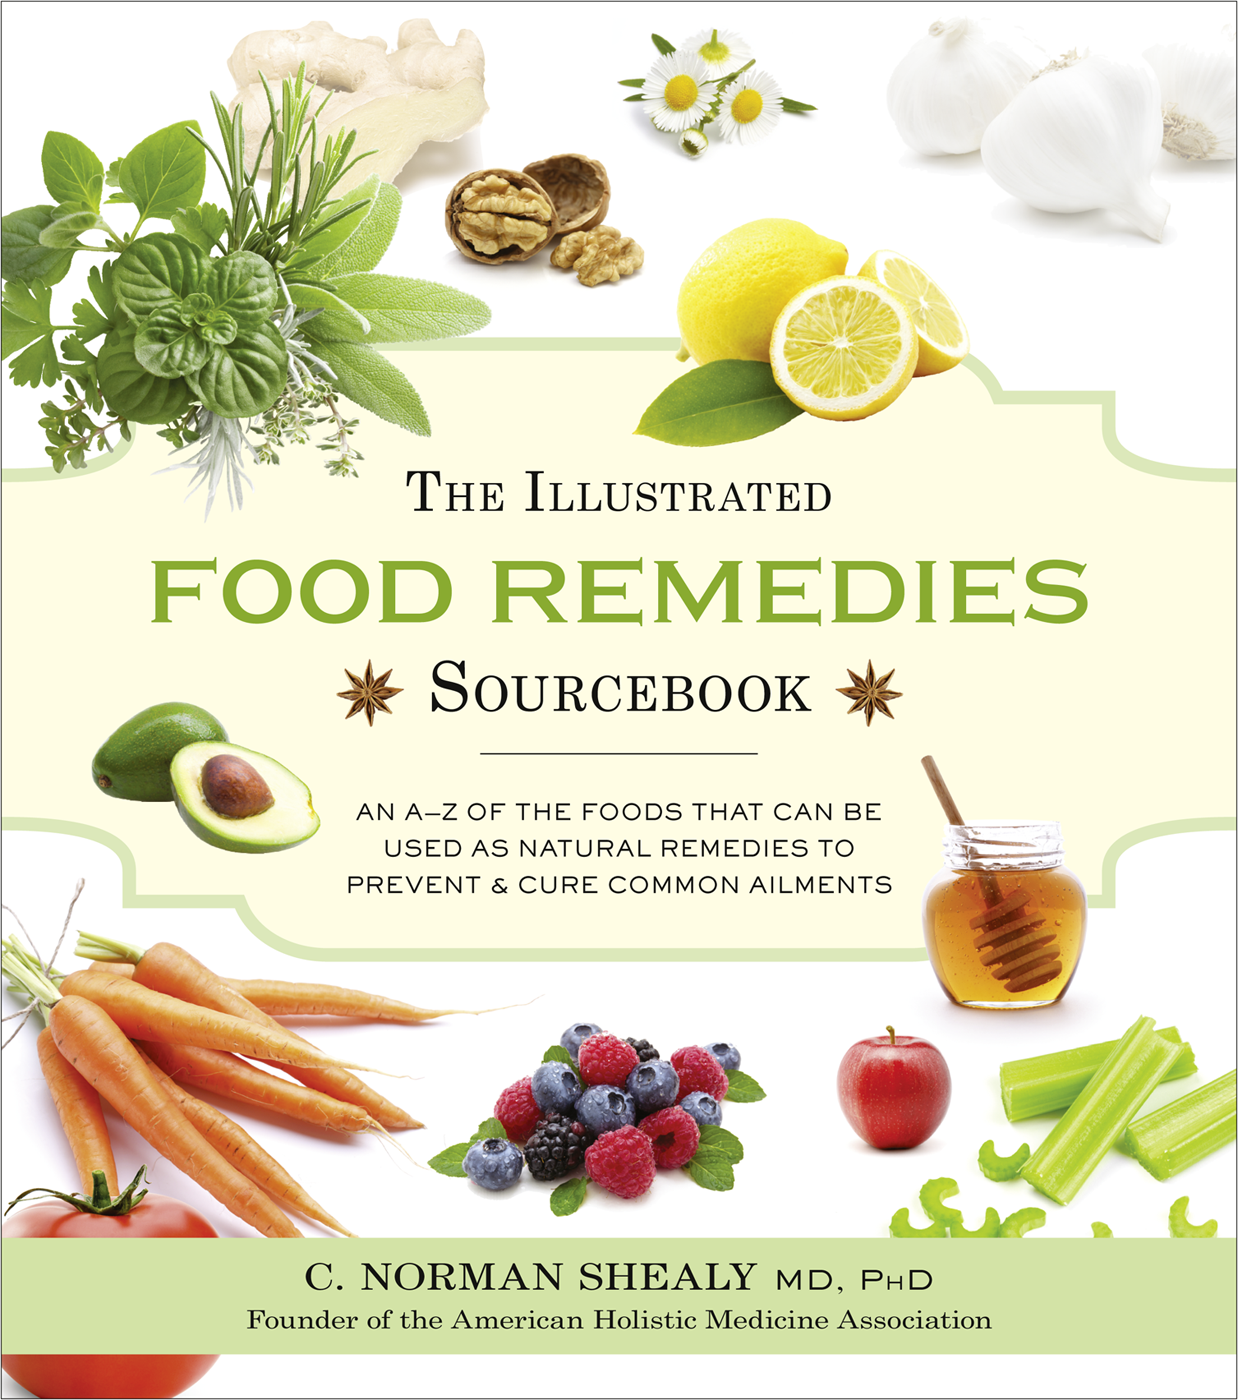 Norman Shealy The Illustrated Food Remedies Sourcebook 1920s fashion the definitive sourcebook